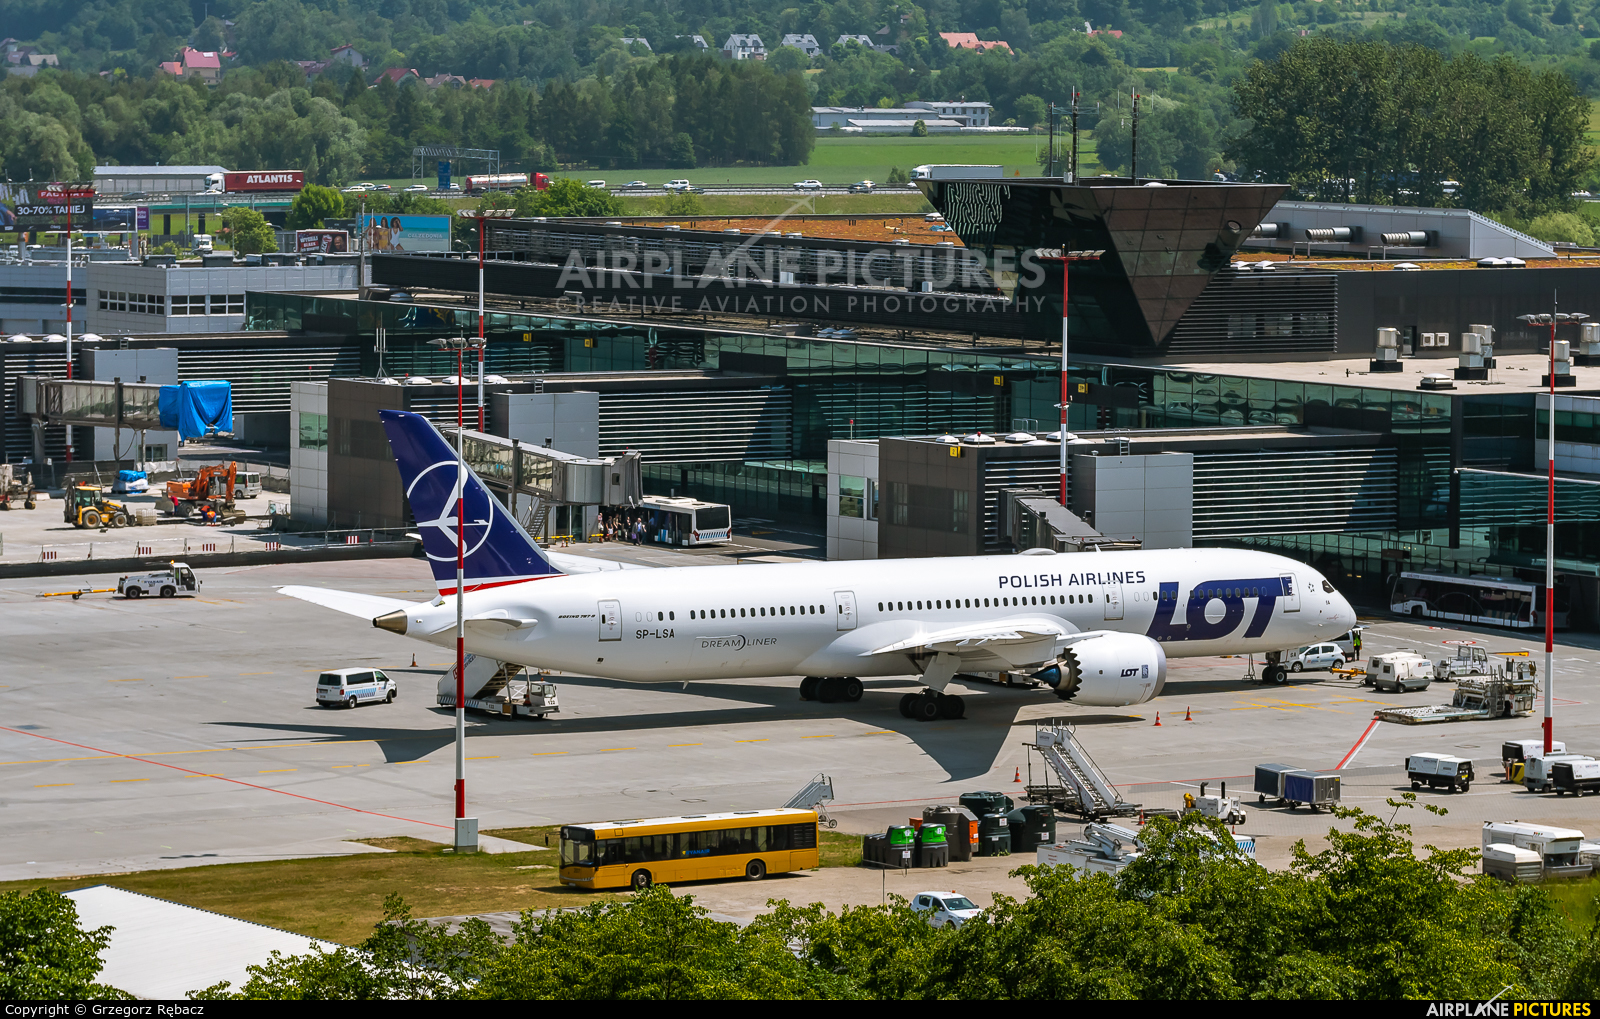 LOT - Polish Airlines SP-LSA aircraft at Kraków - John Paul II Intl